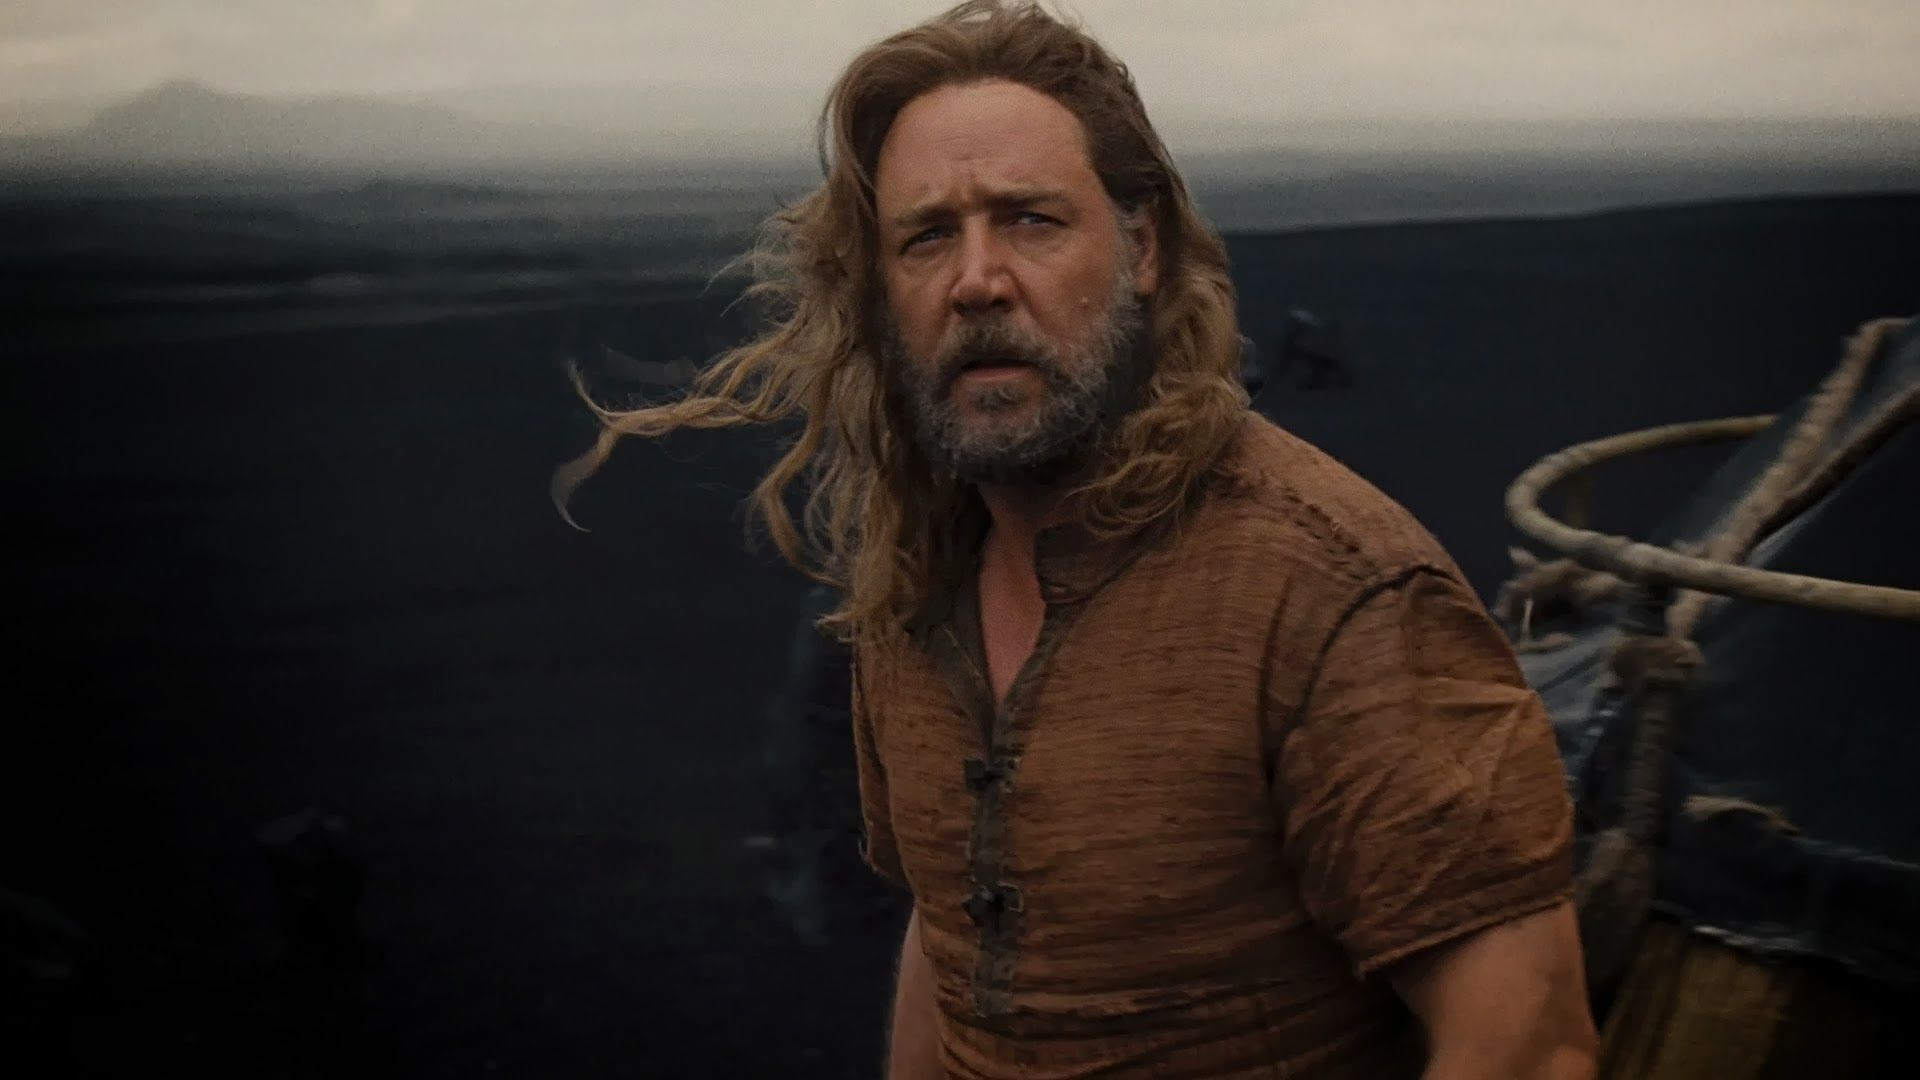 Long Haired Grey Bearded Russell Crowe As Noah With Images Noah Movie Russell Crowe The Bible Movie